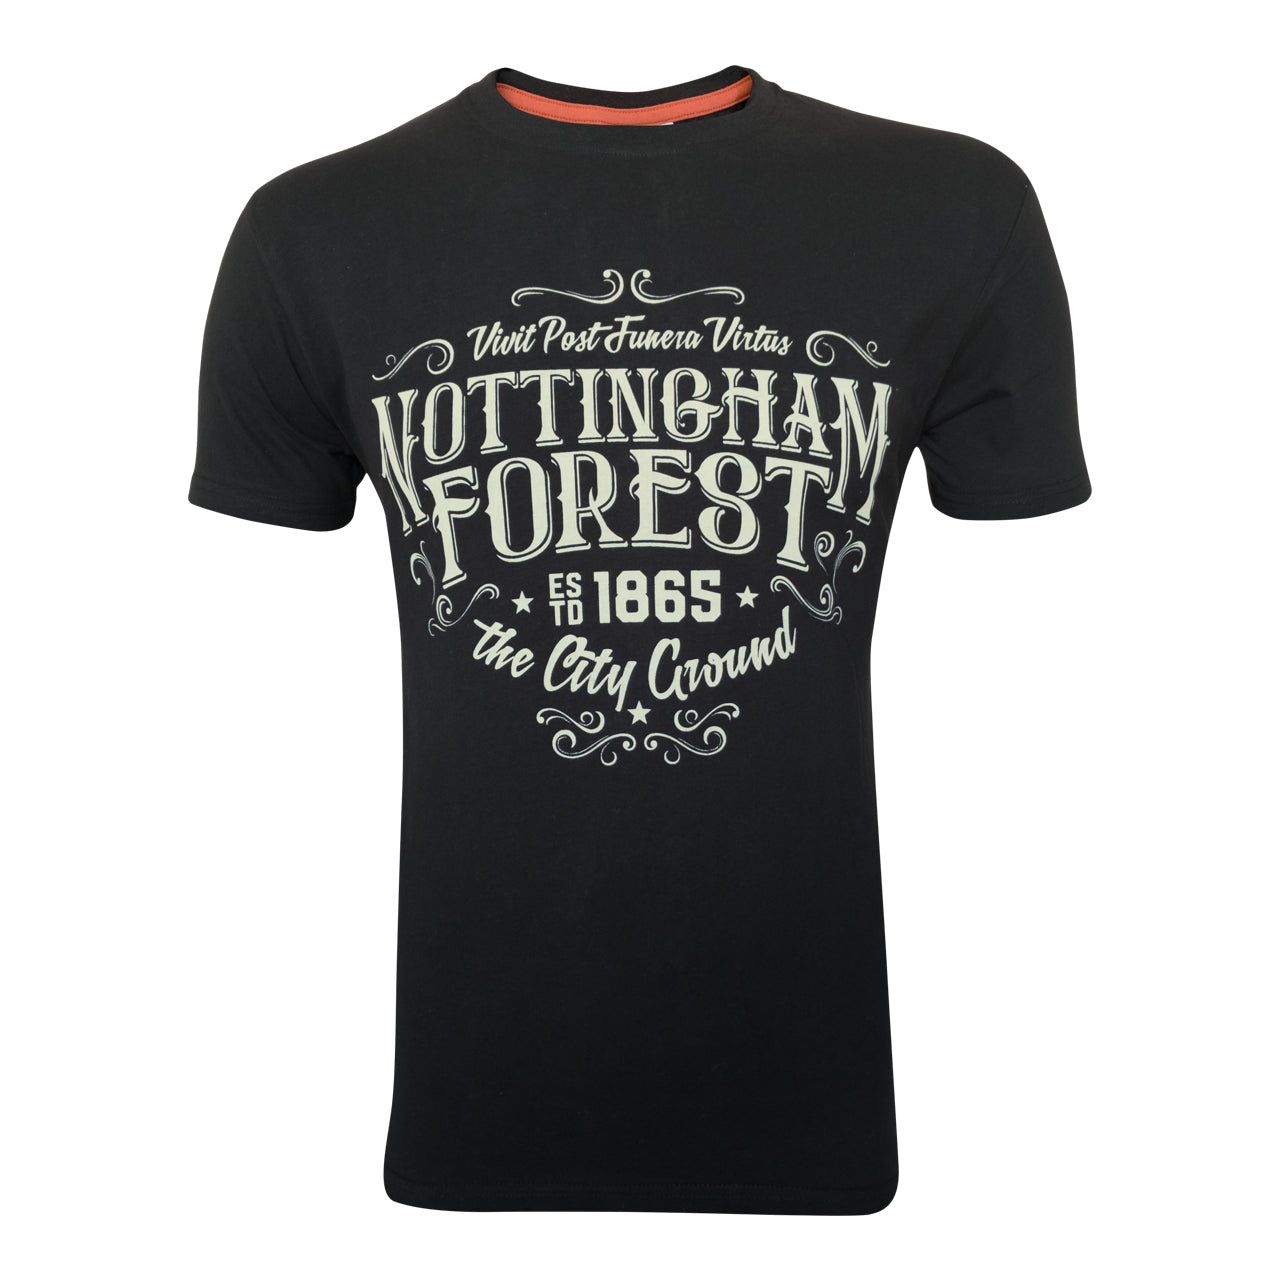 NFFC Junior Black Motto T-Shirt